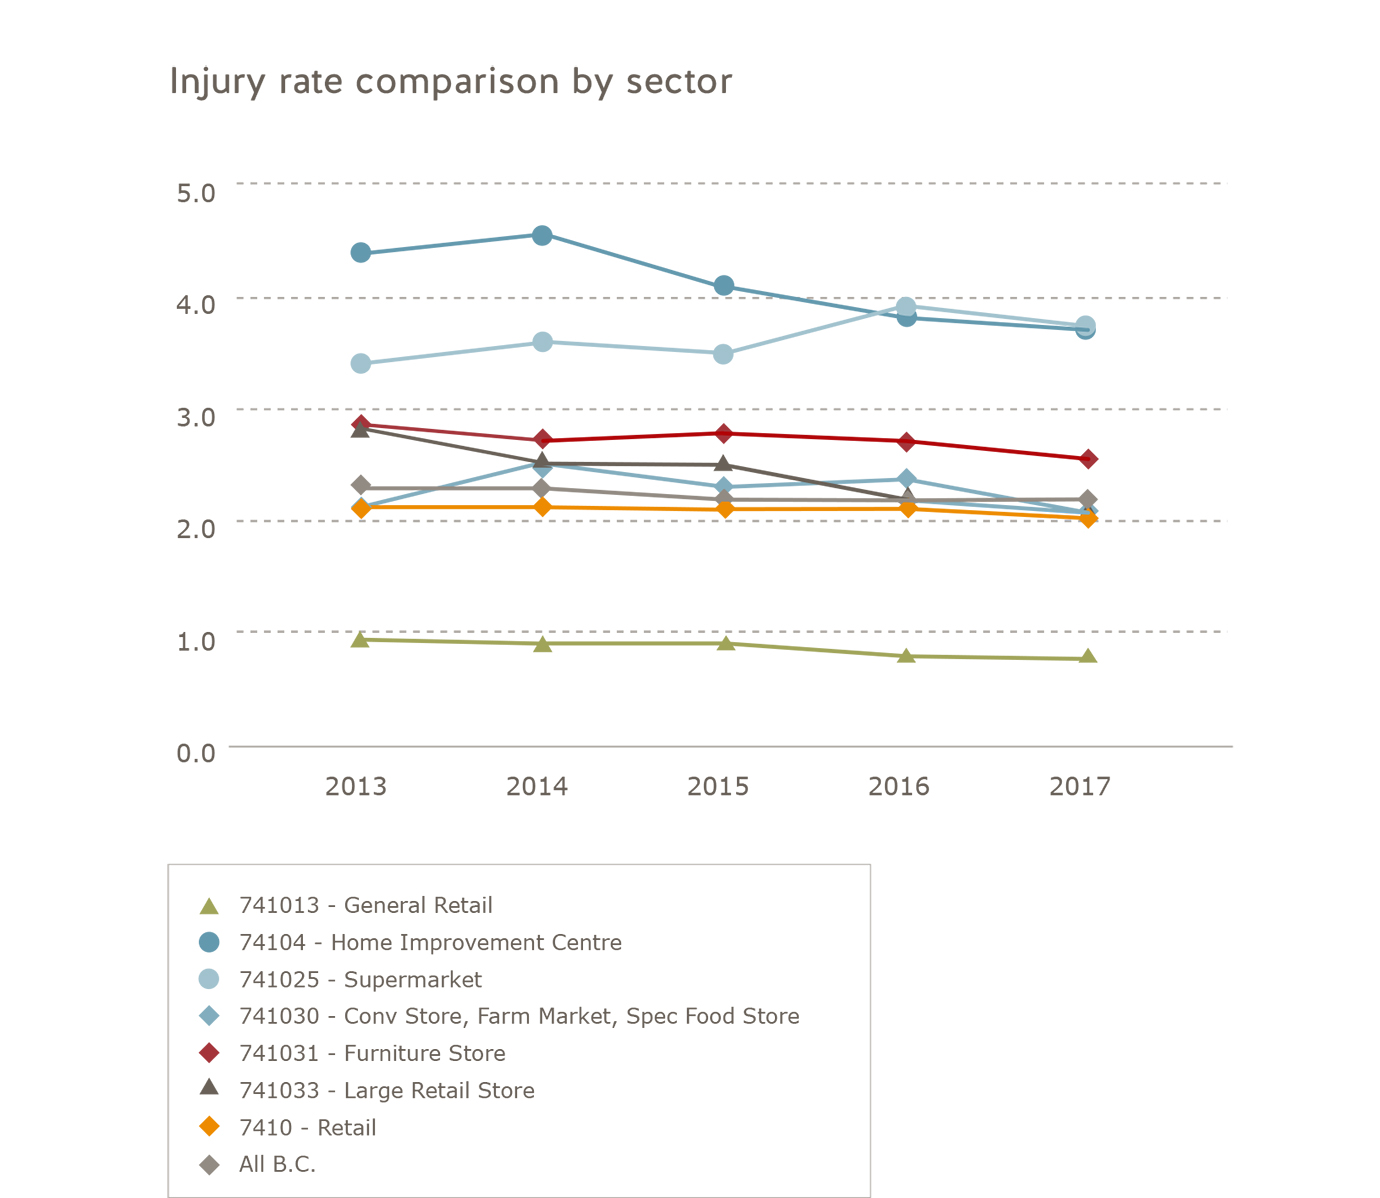 Injury rate comparison retail subsector 2013 to 2017. General retail: 2013 = 0.9, 2014 = 0.9, 2015 = 0.9, 2016 = 0.8, 2017 = 0.8. Home improvement centre: 2013 = 4.4, 2014 = 4.6, 2015 = 4.1, 2016 = 3.8, 2017 = 3.7. Supermarket: 2013 = 3.4, 2014 = 3.6, 2015 = 3.5, 2016 = 4.0, 2017 = 3.8. Convenience store, farm market, specialty food store: 2013 = 2.1, 2014 = 2.5, 2015 = 2.3, 2016 = 2.4, 2017 = 2.1. Large retail store: 2013 = 2.9, 2014 = 2.5, 2015 = 2.5, 2016 = 2.2, 2017 = 2.1. Retail: 2013 = 2.1, 2014 = 2.1, 2015 = 2.1, 2016 = 2.1, 2017 = 2.0. All of B.C.: 2013 = 2.3, 2014 = 2.3, 2015 = 2.2, 2016 = 2.2, 2017 = 2.2.